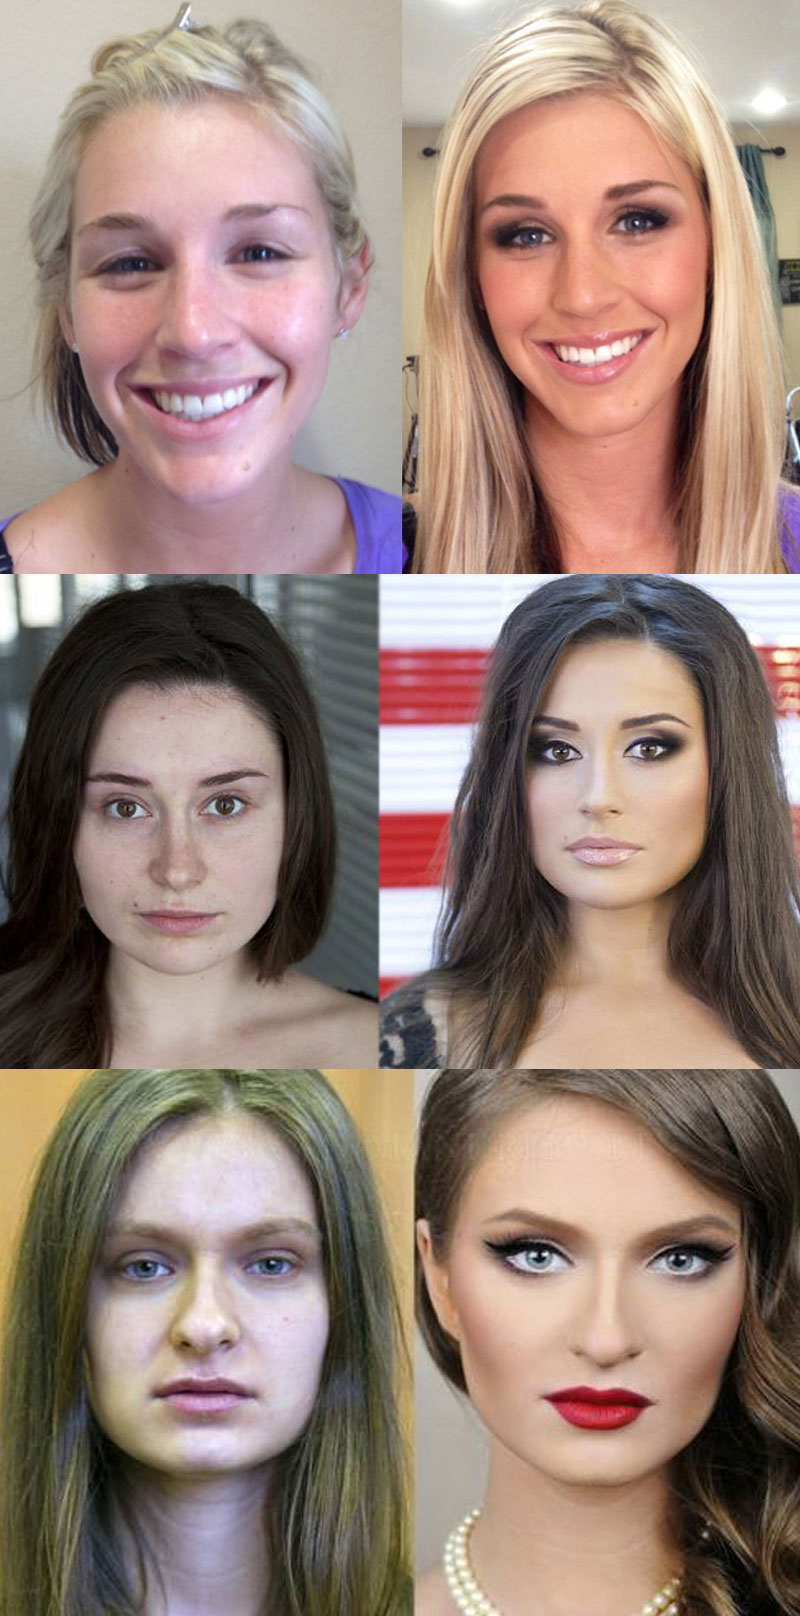 Women - with and without make up